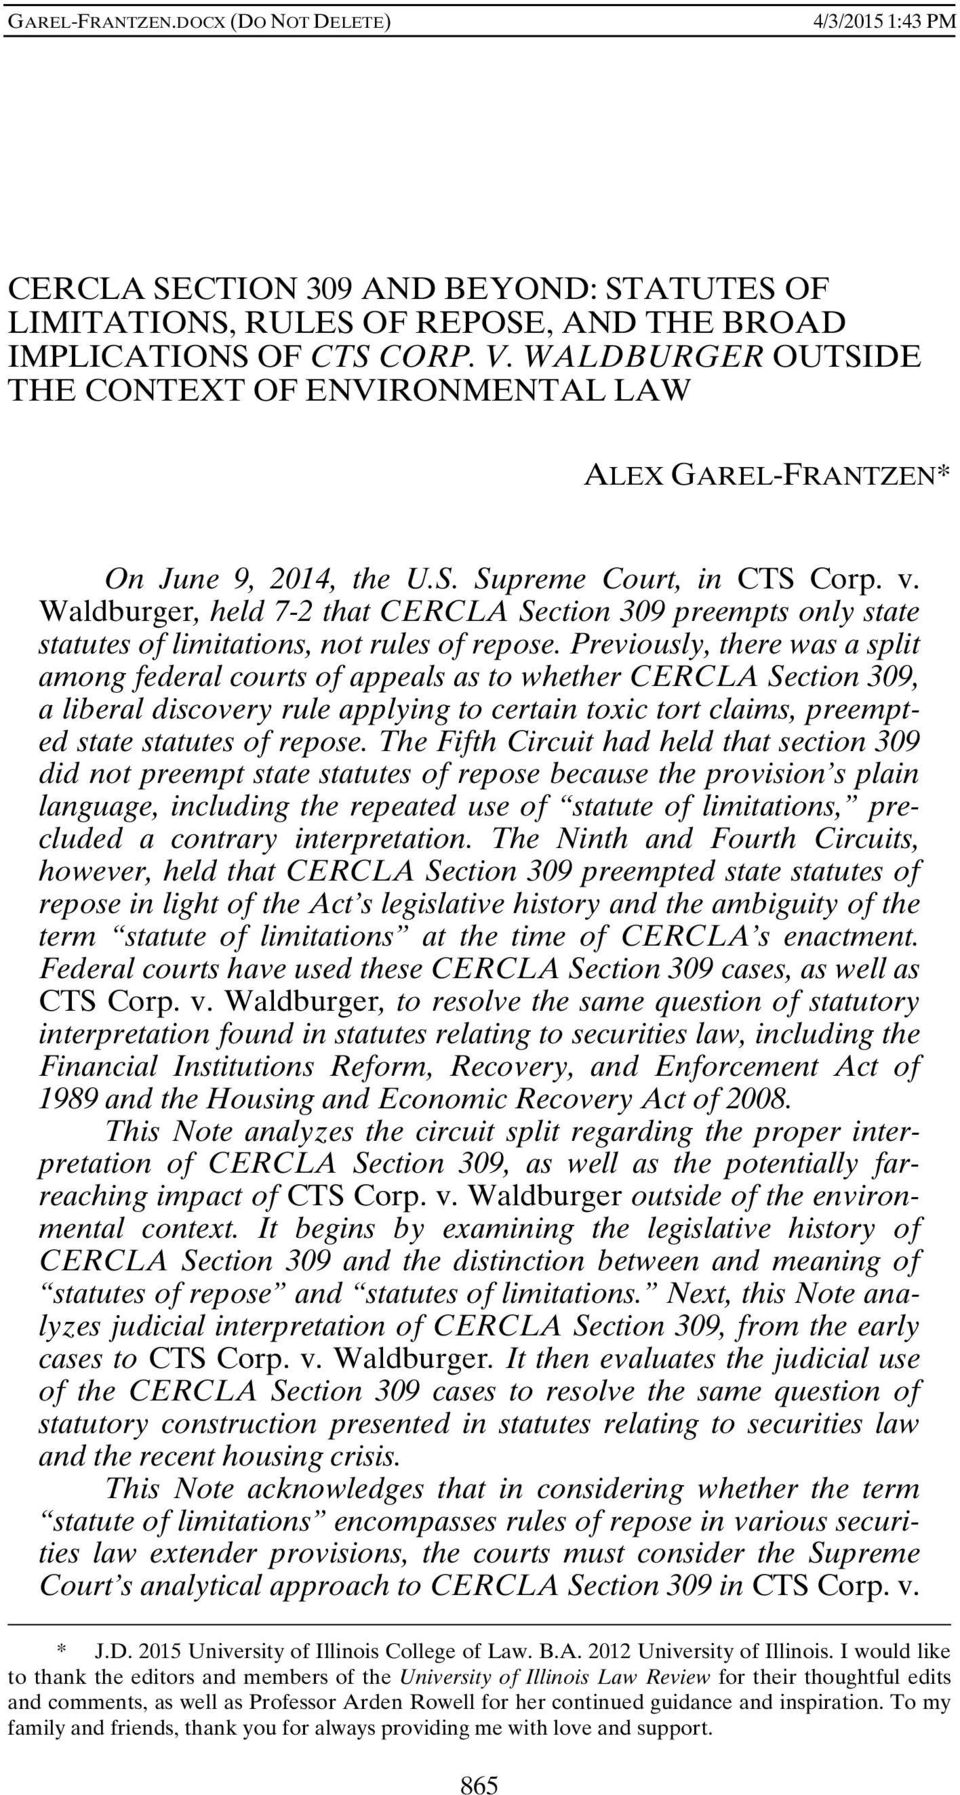 Waldburger, held 7-2 that CERCLA Section 309 preempts only state statutes of limitations, not rules of repose.